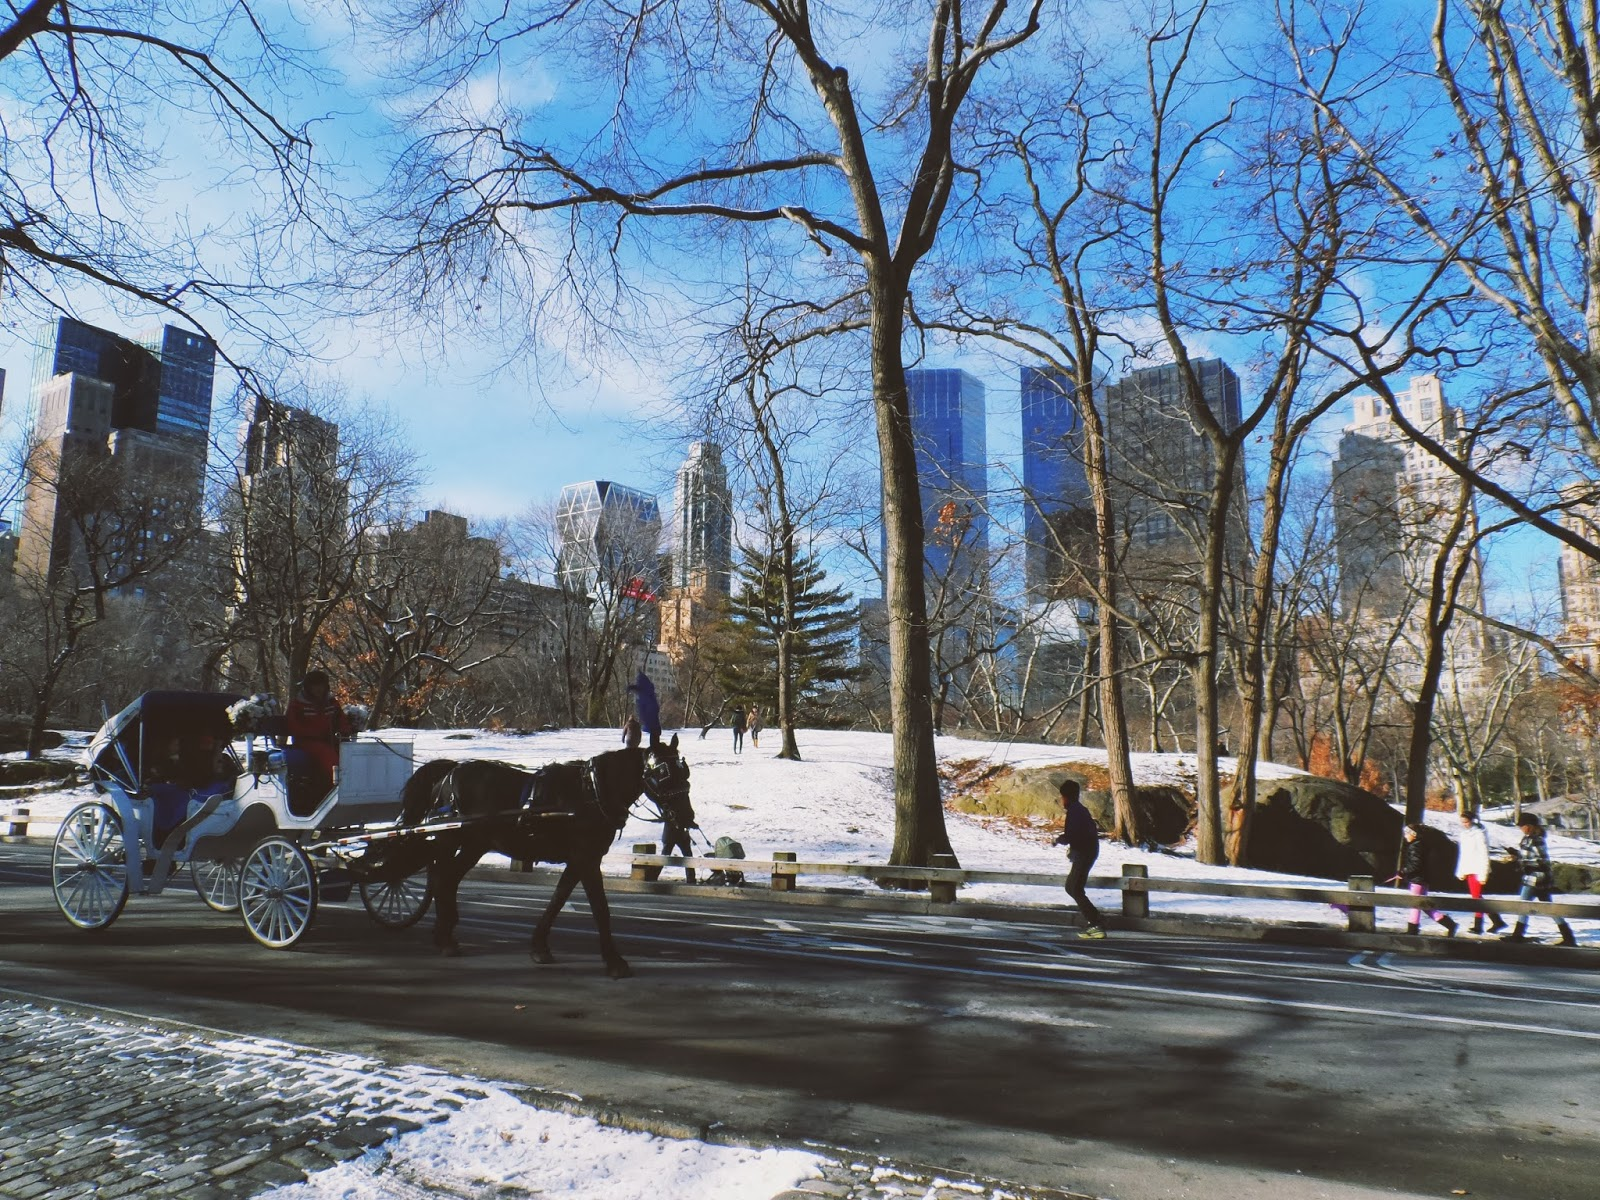 Central Park, New York, travel, snow, winter